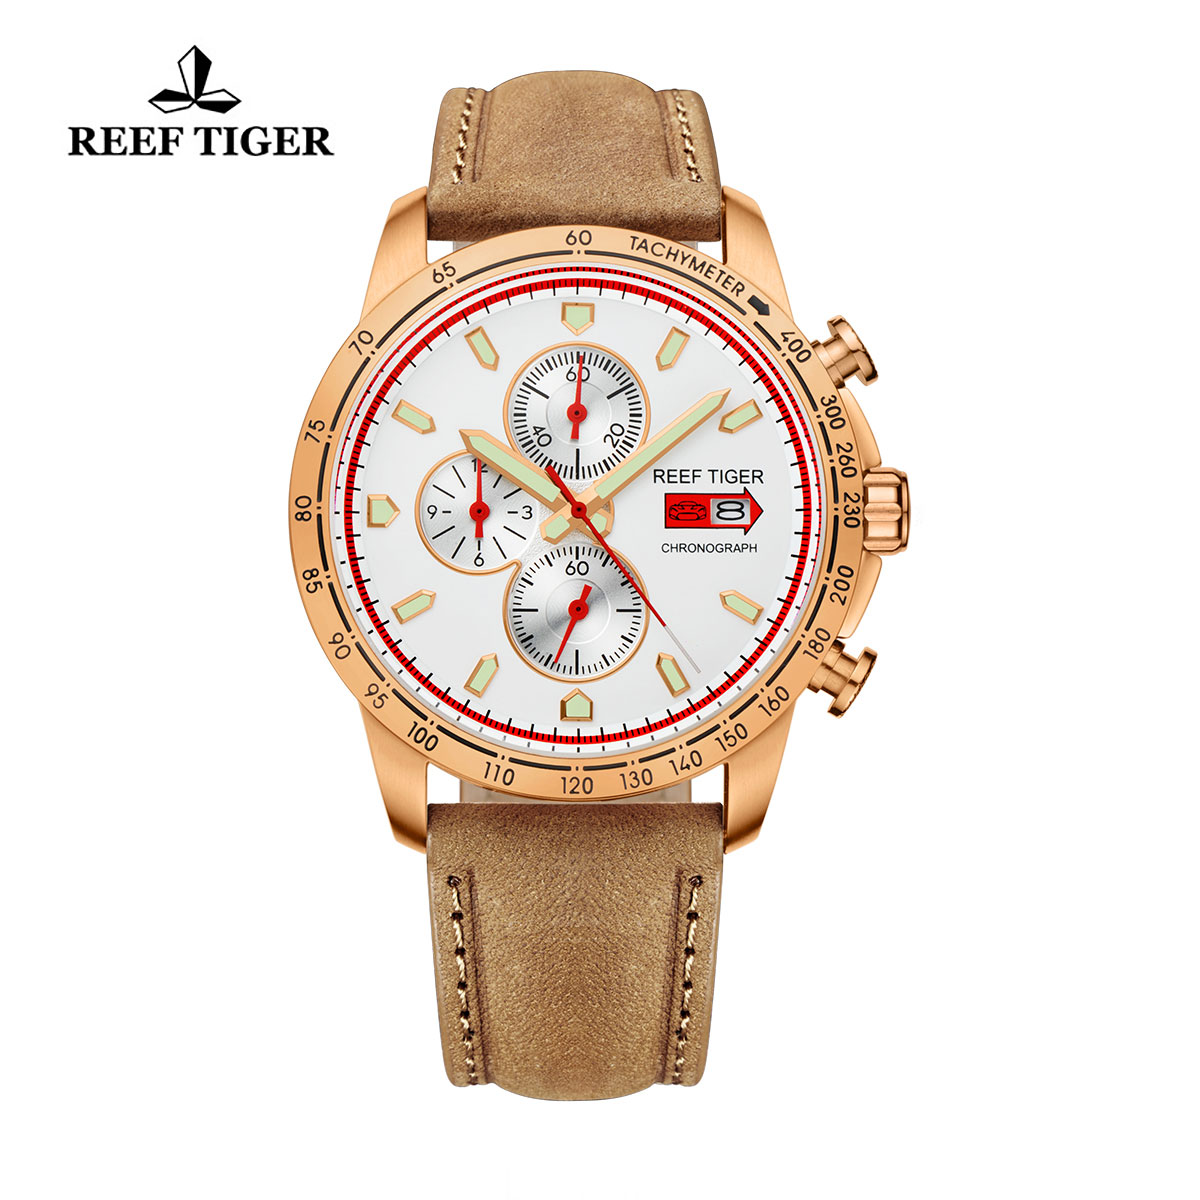 Reef Tiger Racing Casual Watch Rose Gold White Dial Leather Strap Chronograph Watch RGA3029-PWB